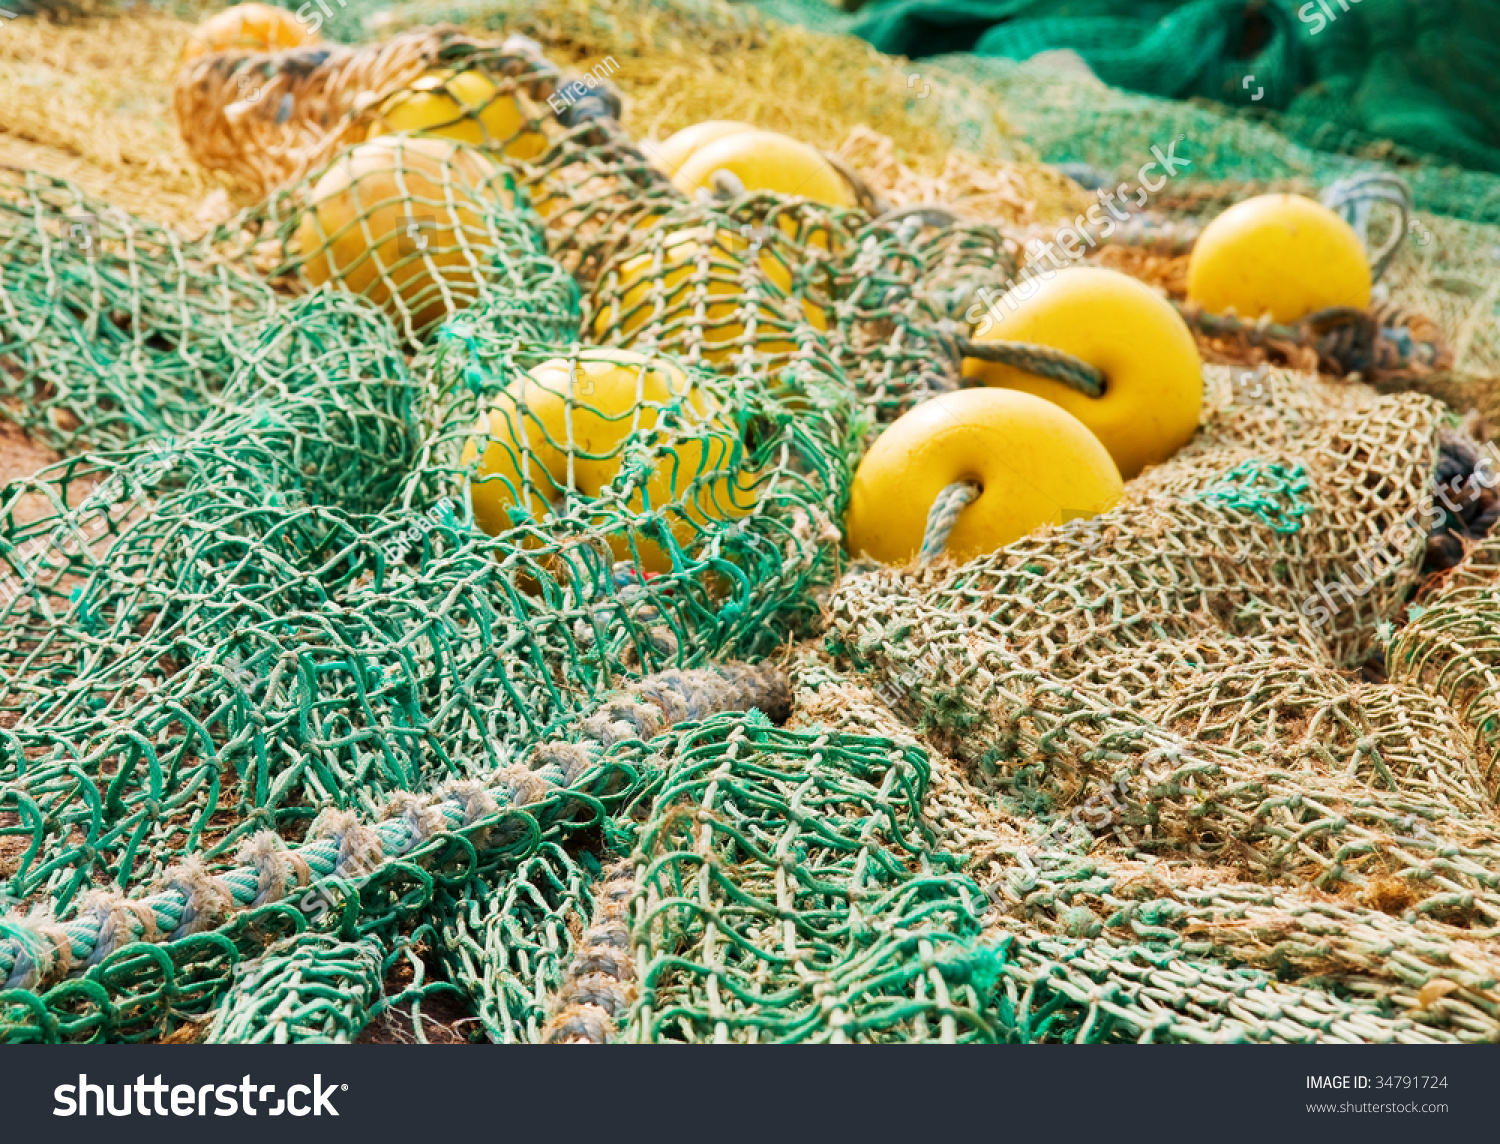 Fishing nets and floats stock photo 34791724 shutterstock for Fishing net floats